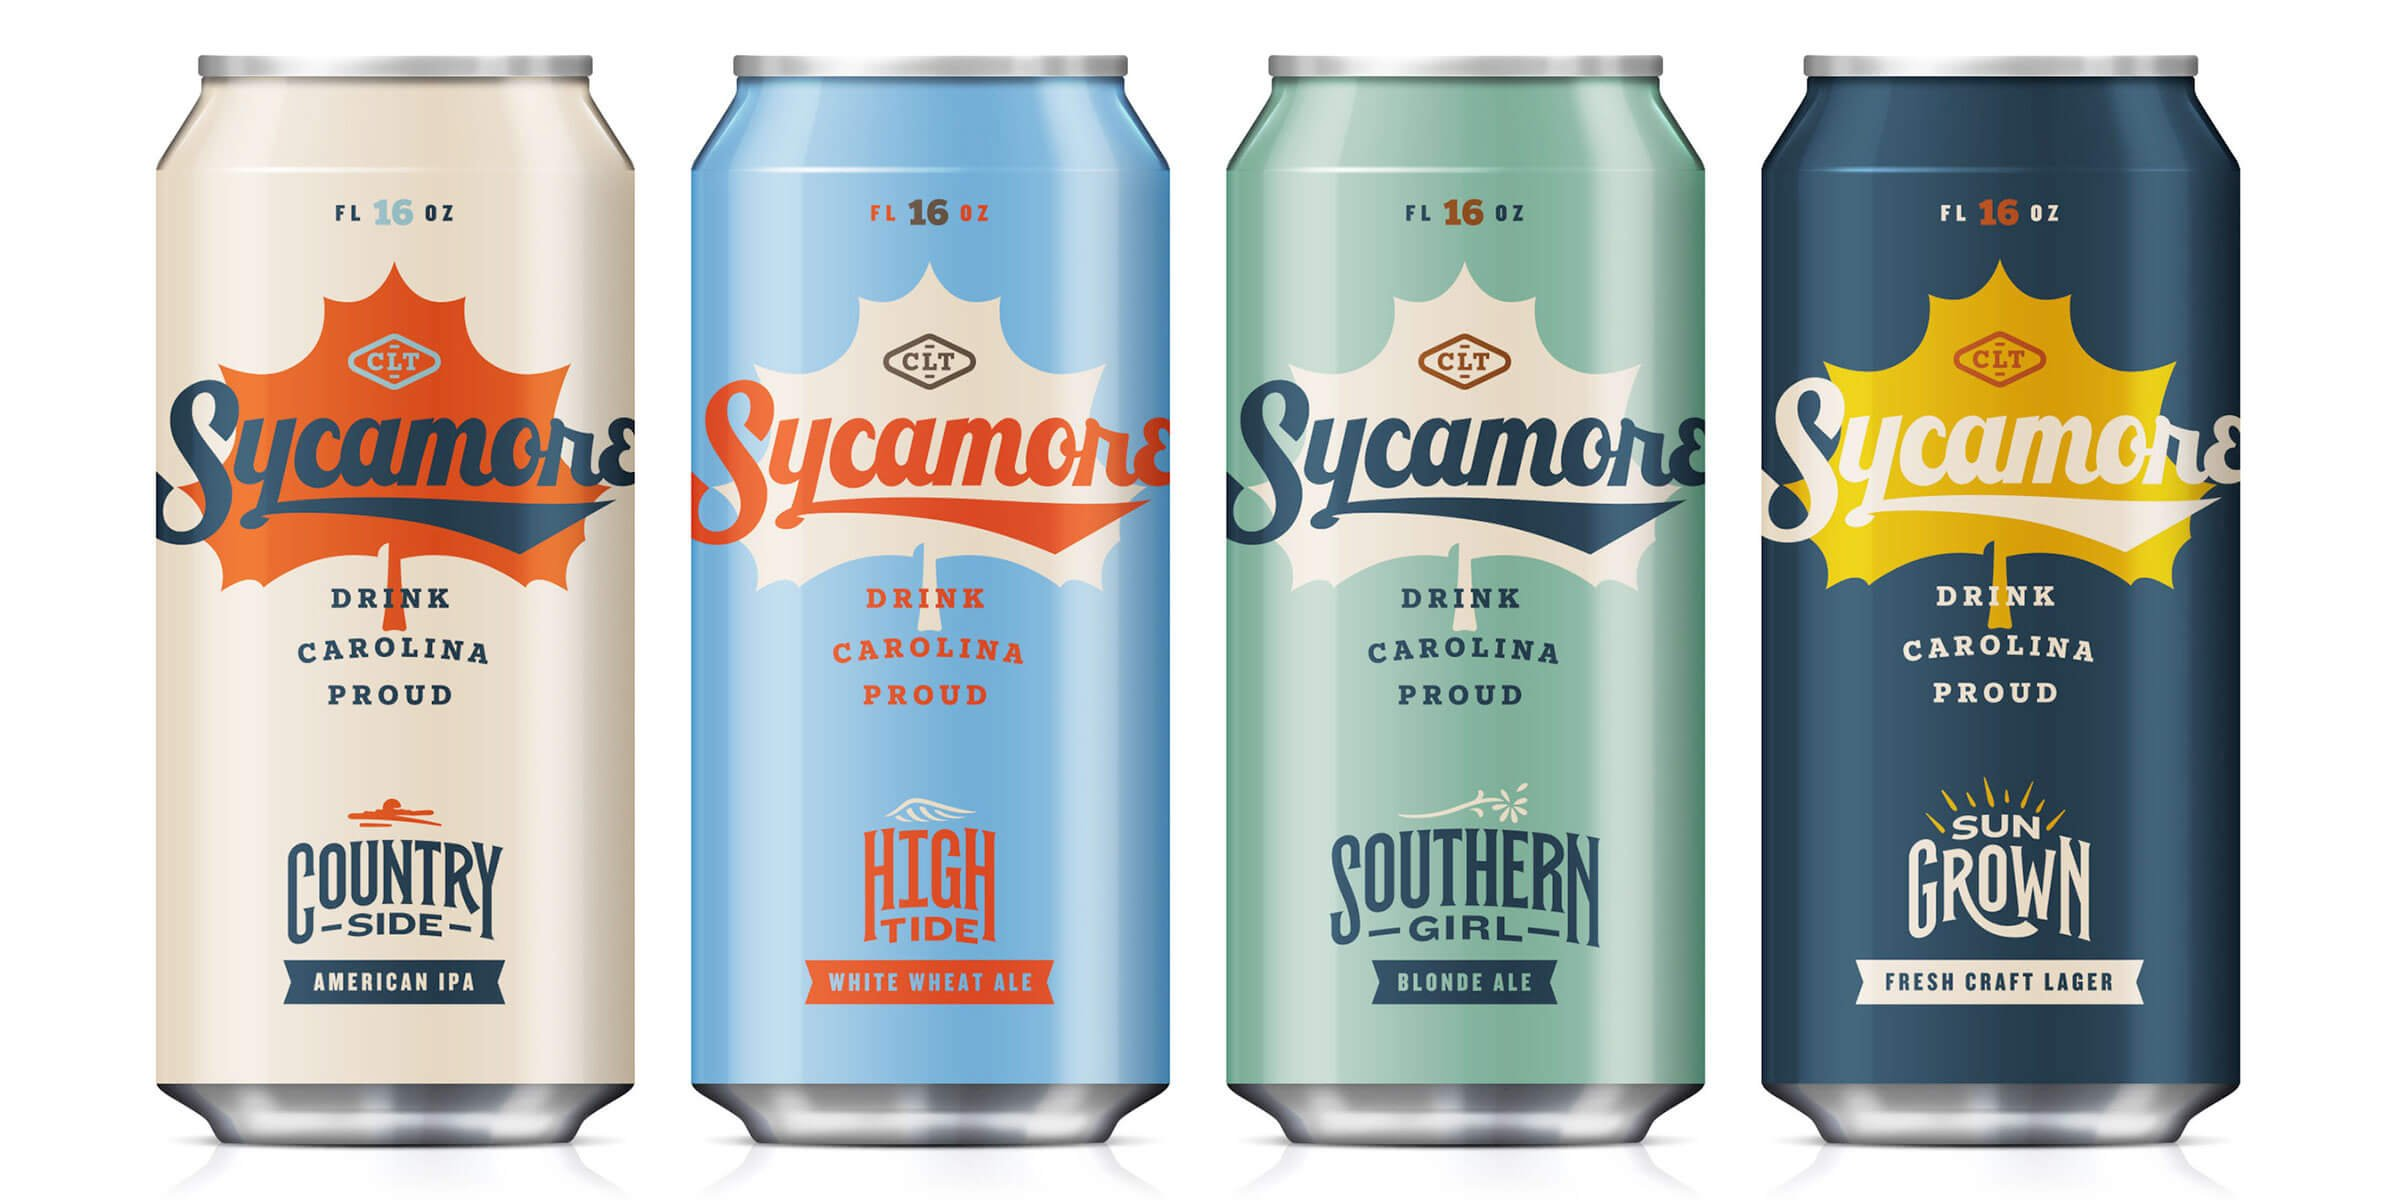 Lineup of canned beers offered by Sycamore Brewing